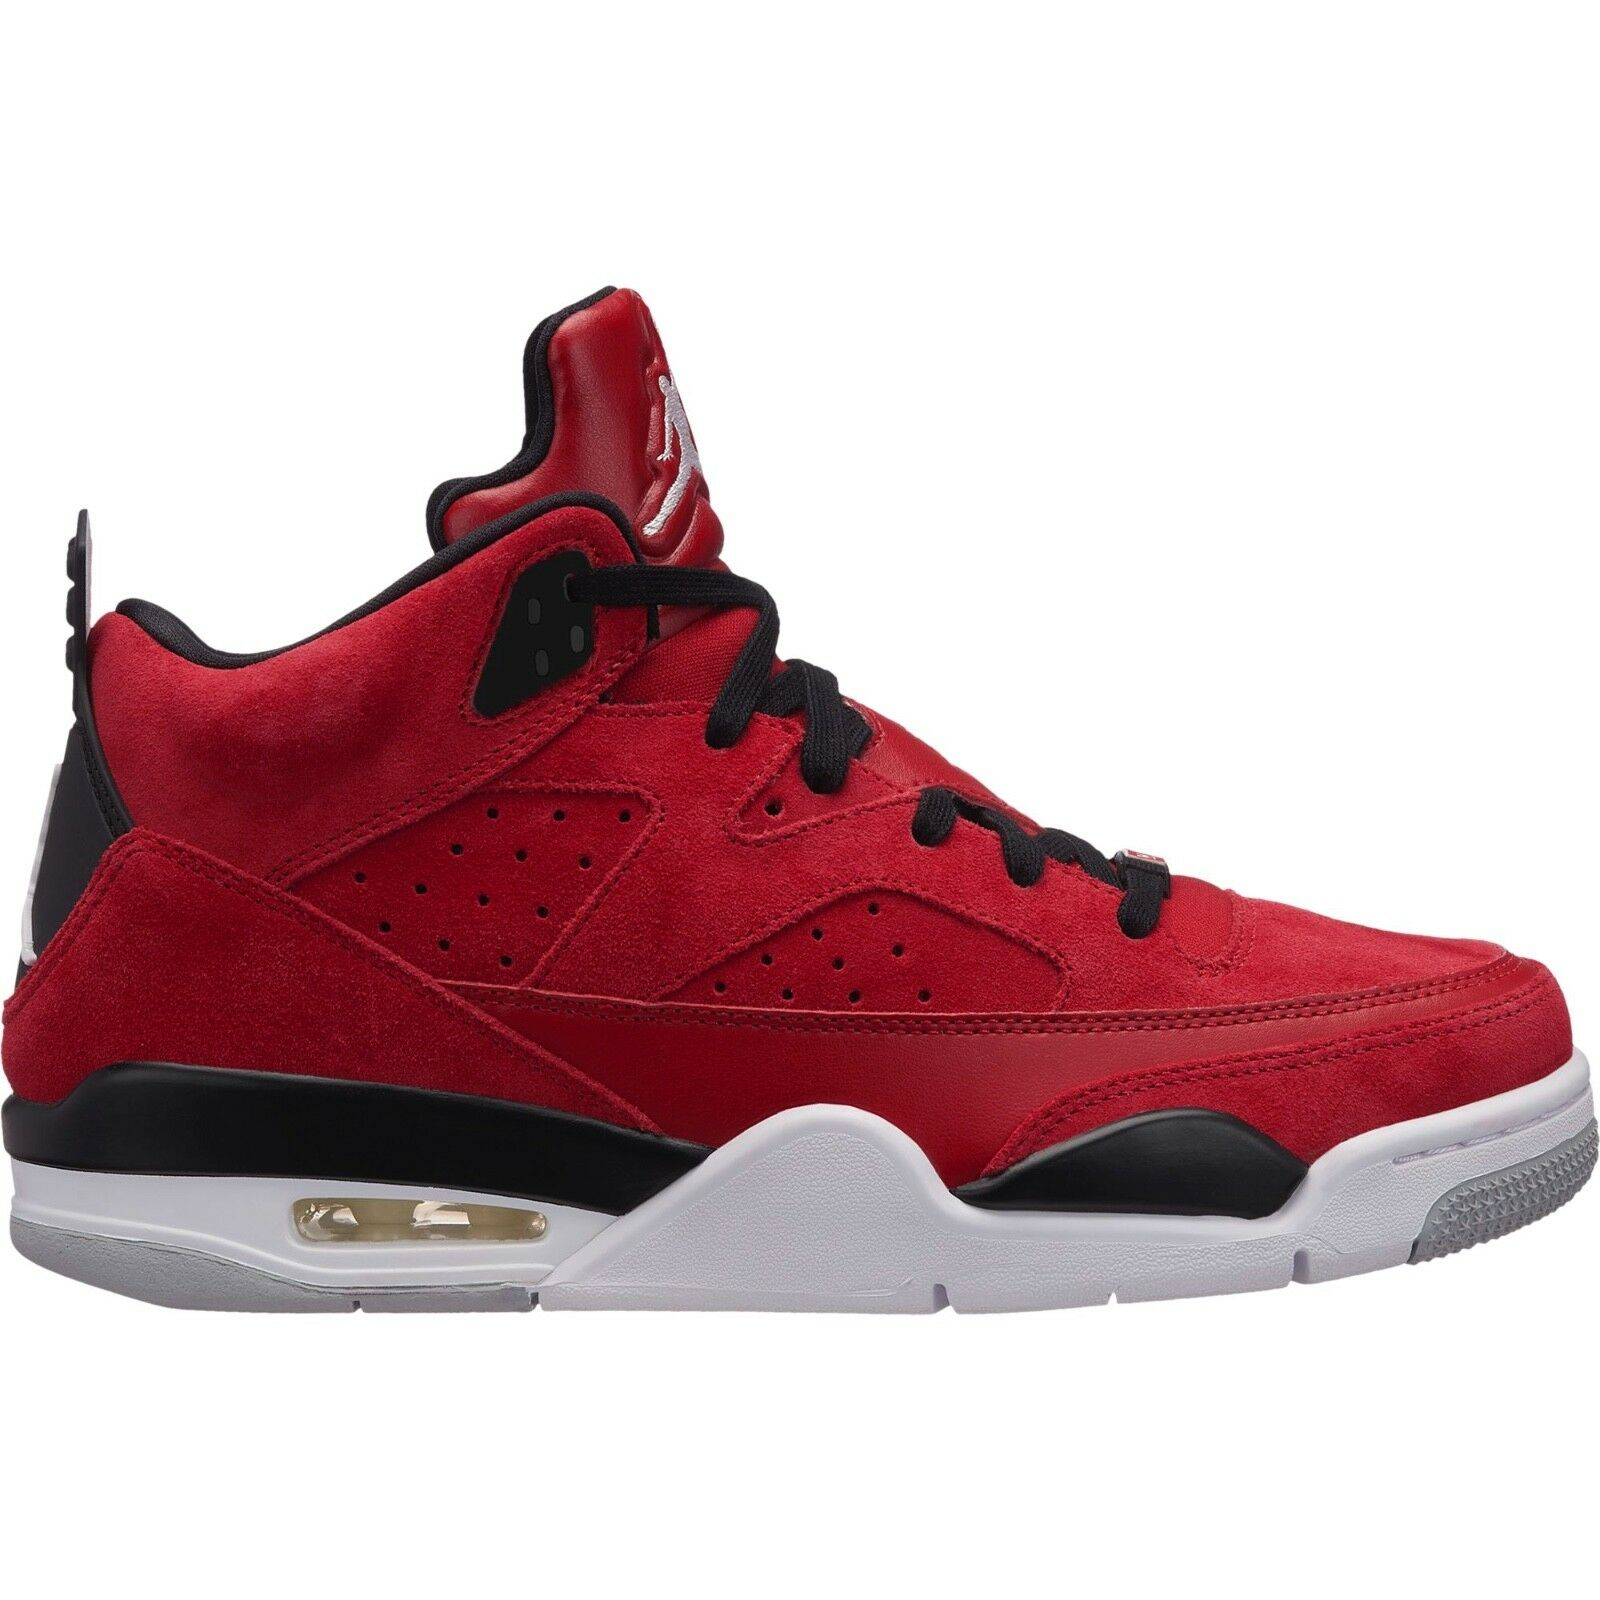 wholesale dealer a8d29 96427 ... germany nike jordan son of low 580603 603 gr.41 46 jumpman rot weiß  herrenschuhe